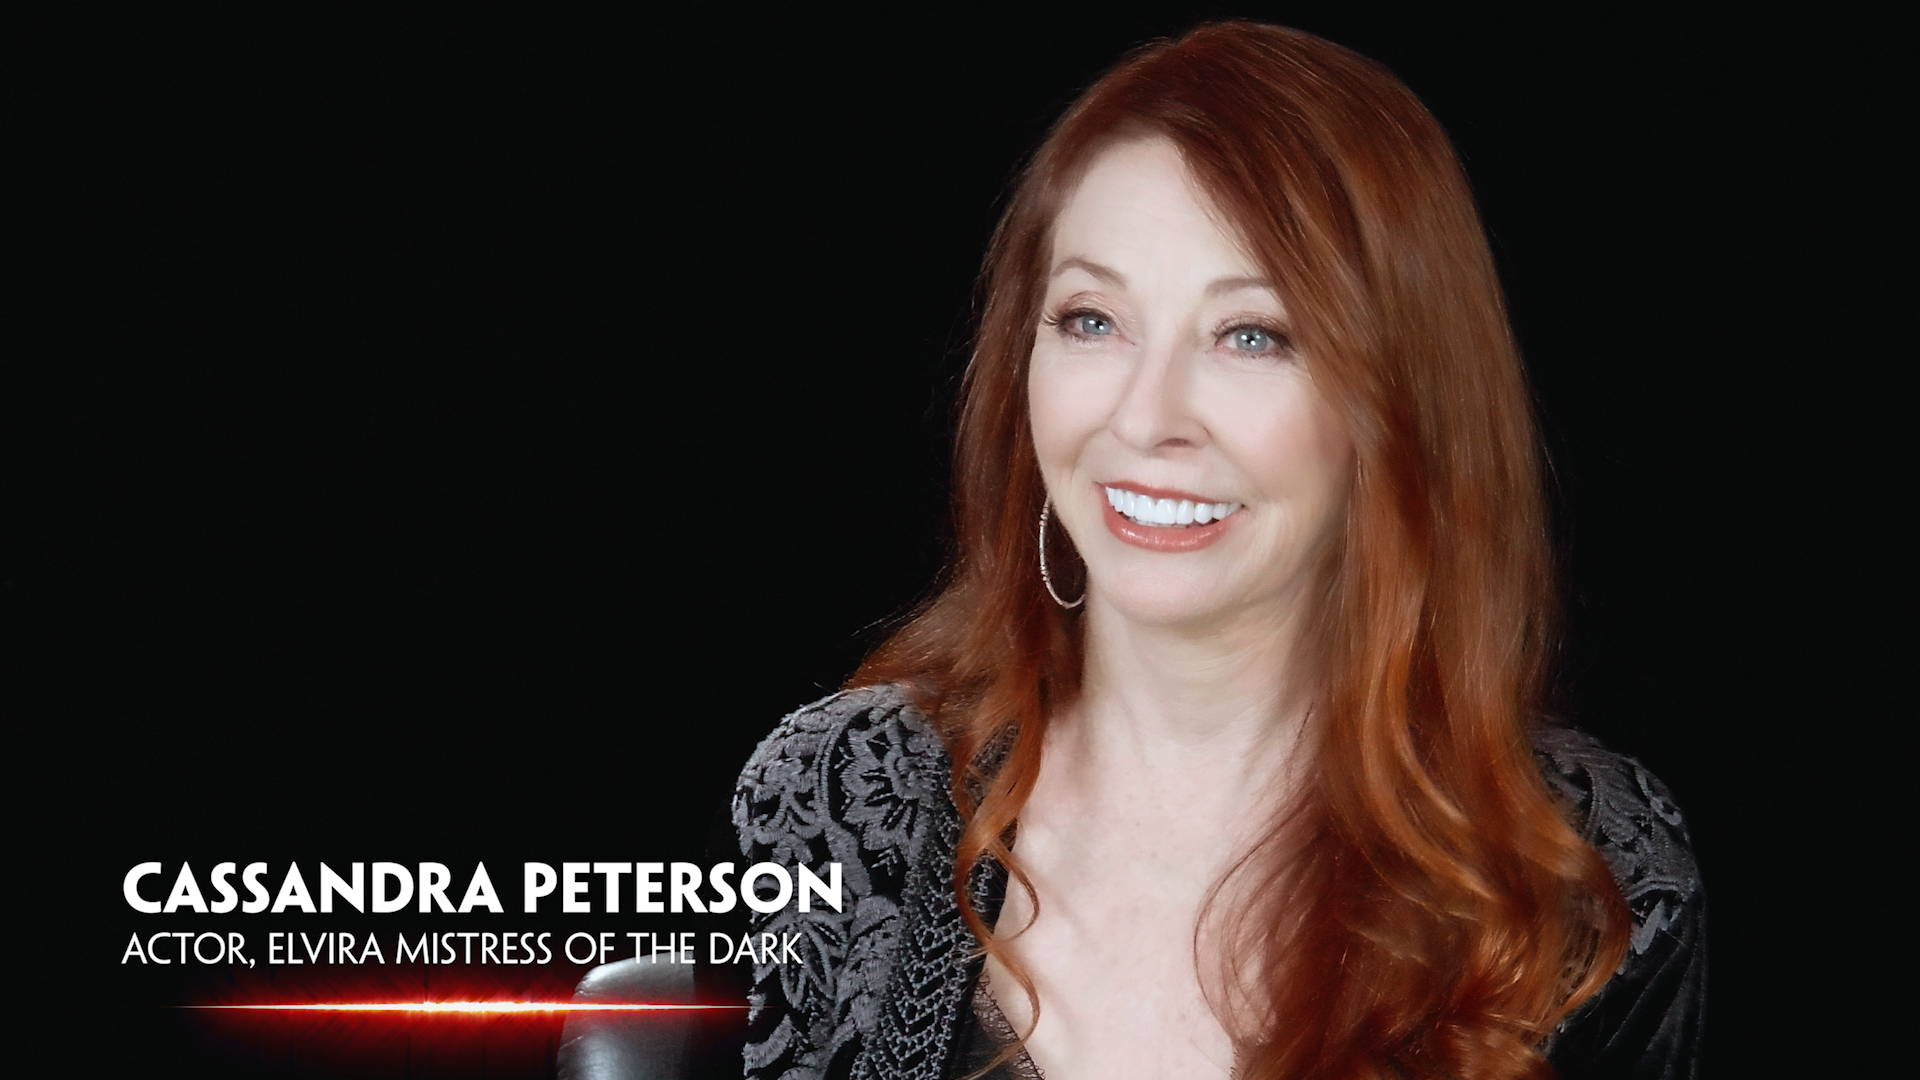 In Search of Darkness Part II: Cassandra Peterson interview